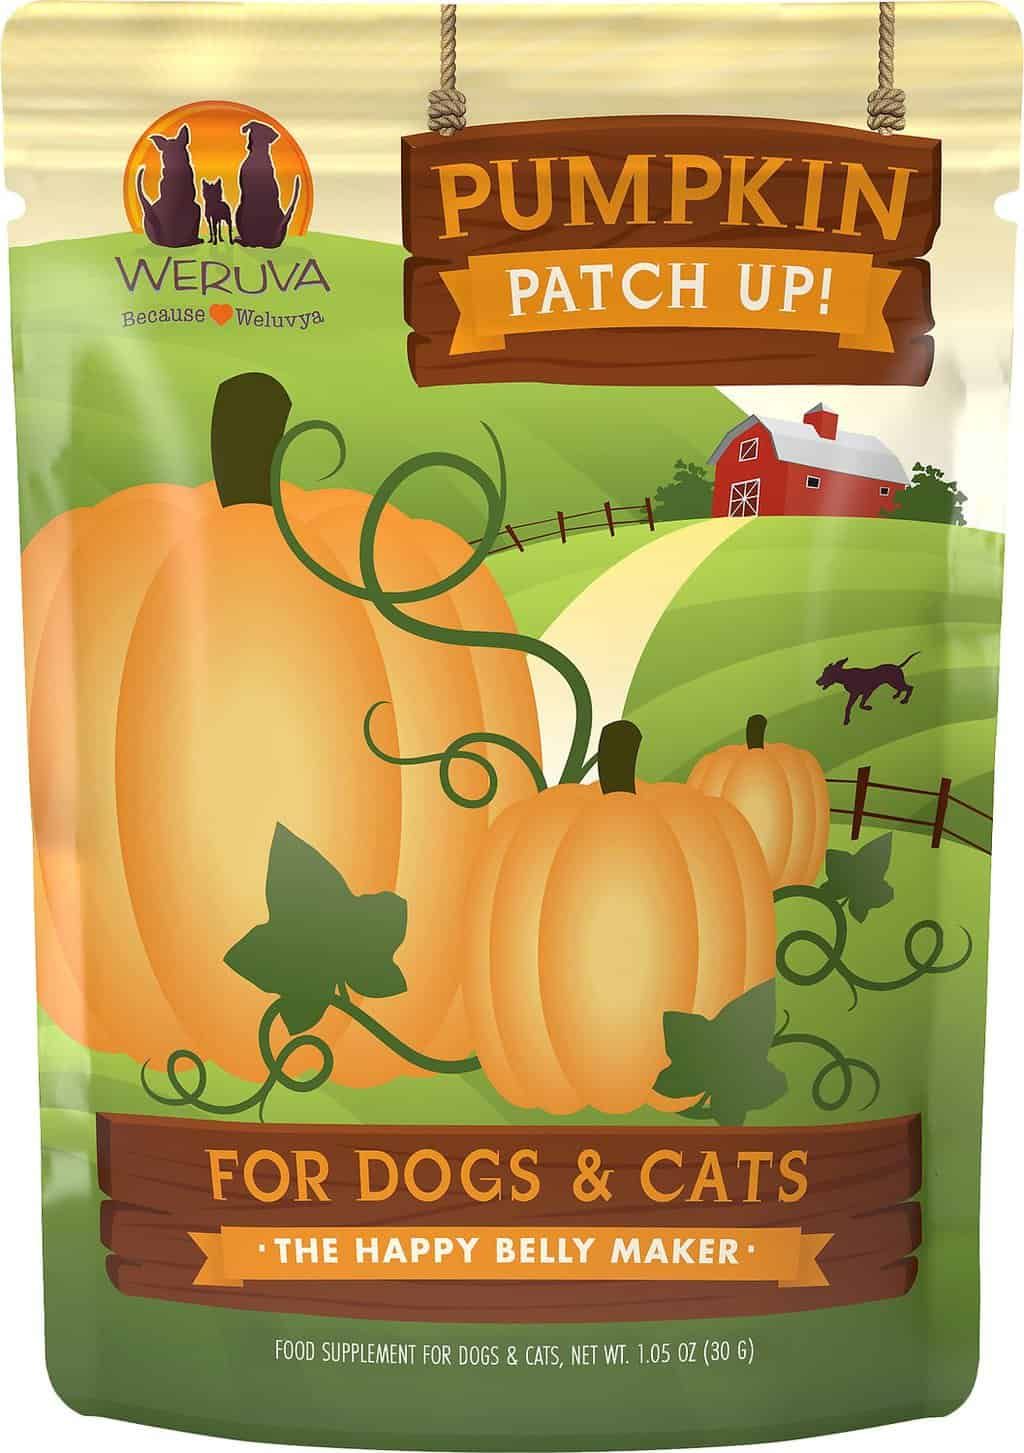 Weruva Dog Food Review 2021: Treat Your Pet To A Lil' Luxury! 22